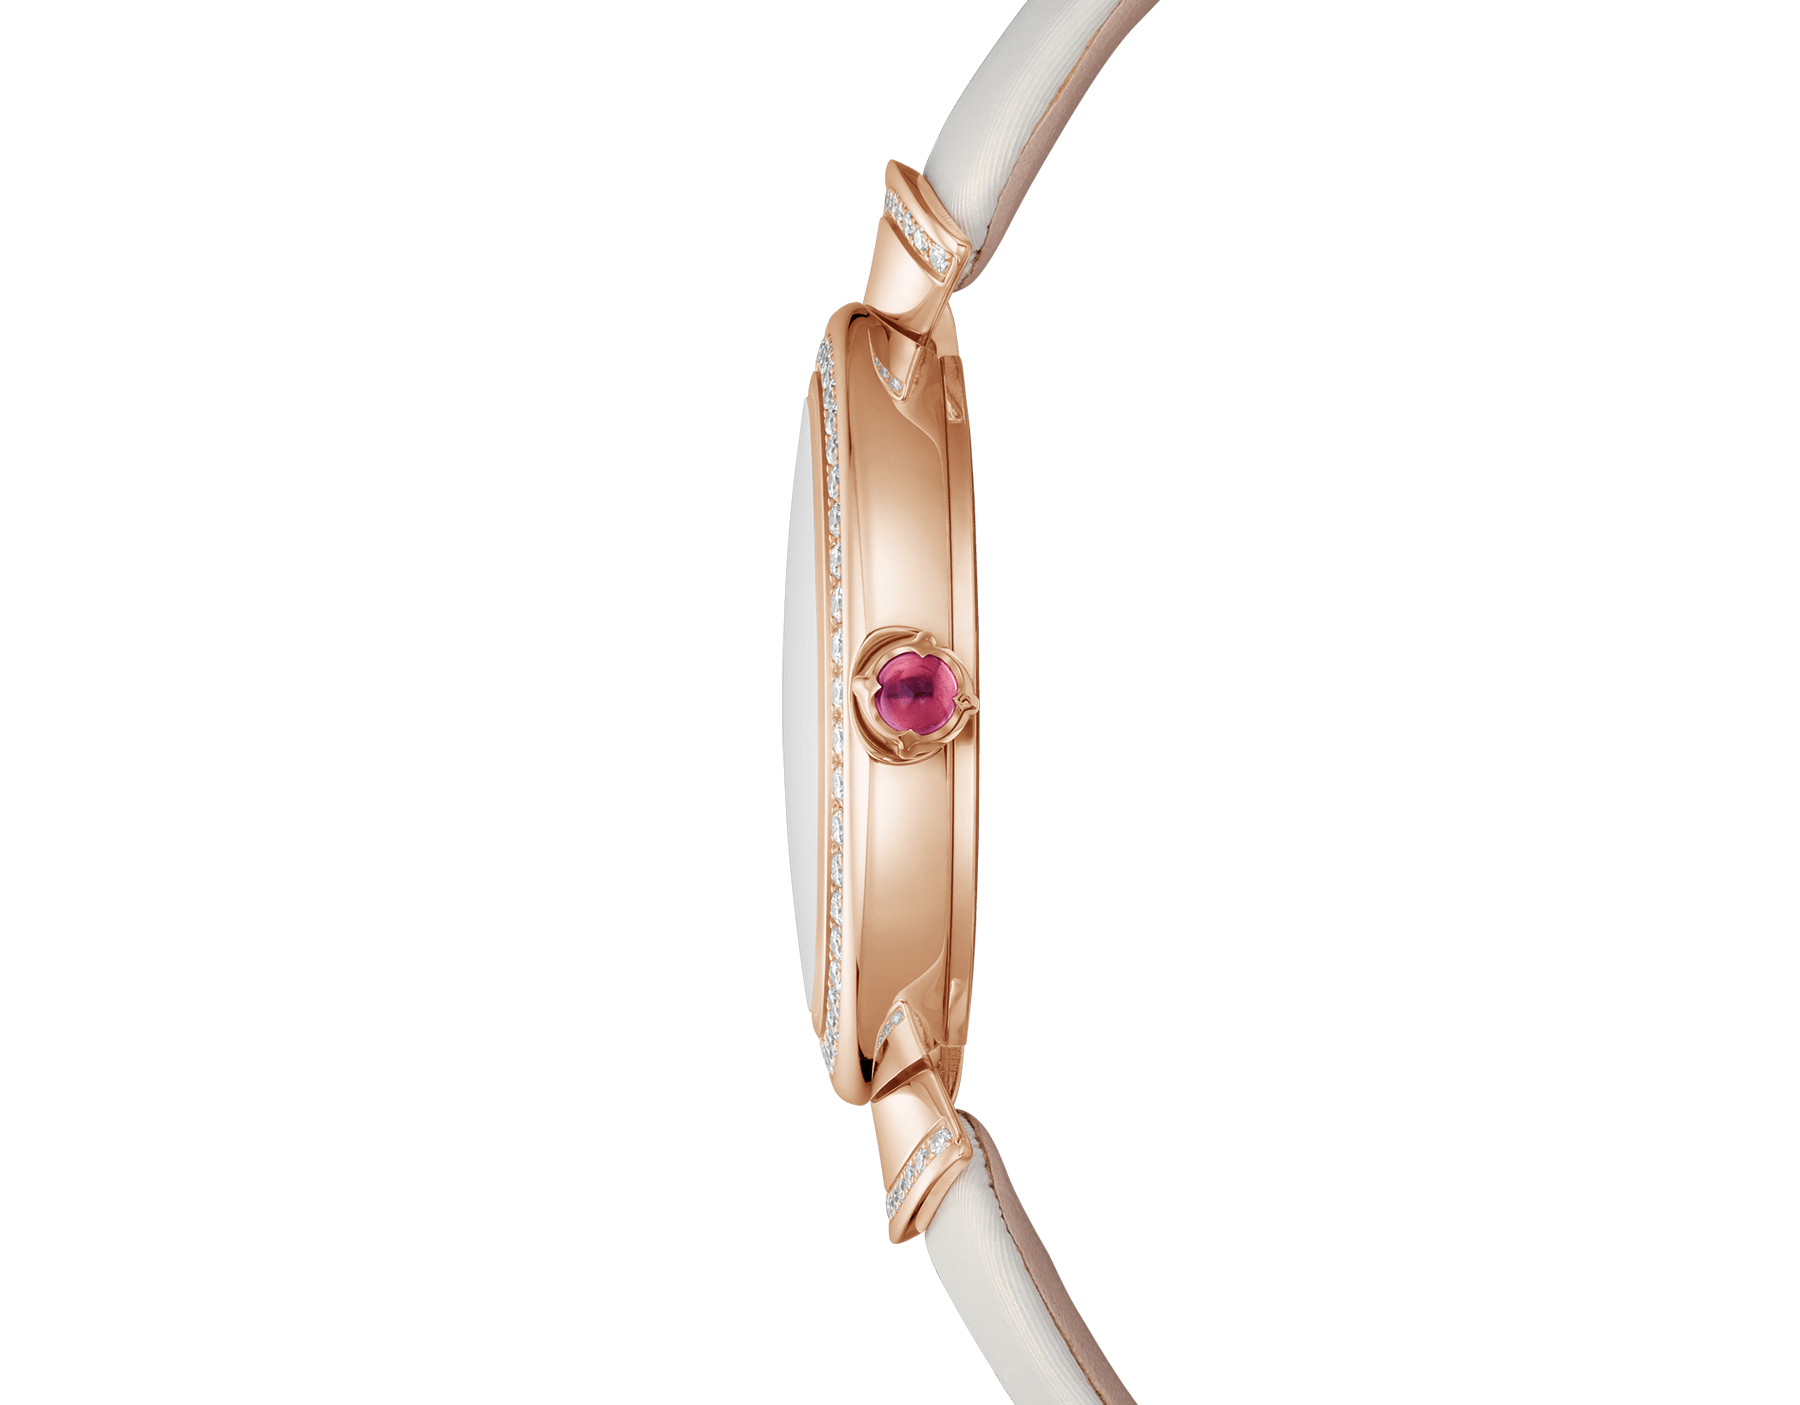 DIVAS' DREAM watch with 18 kt rose gold case set with brilliant-cut diamonds, natural acetate dial, diamond indexes and white satin bracelet 102433 image 3